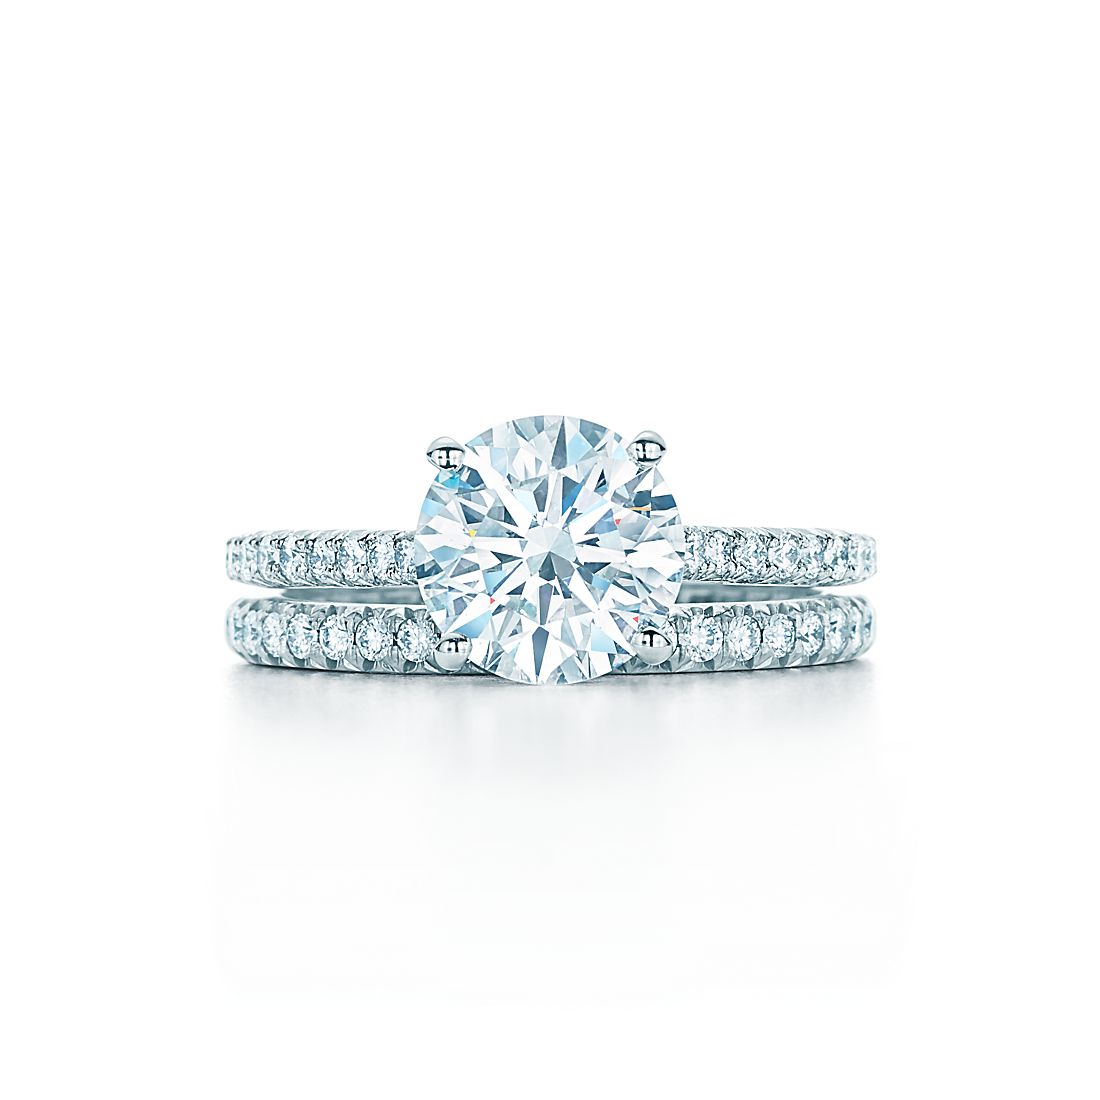 Tiffany and co engagement rings novo for Where is tiffany and co located